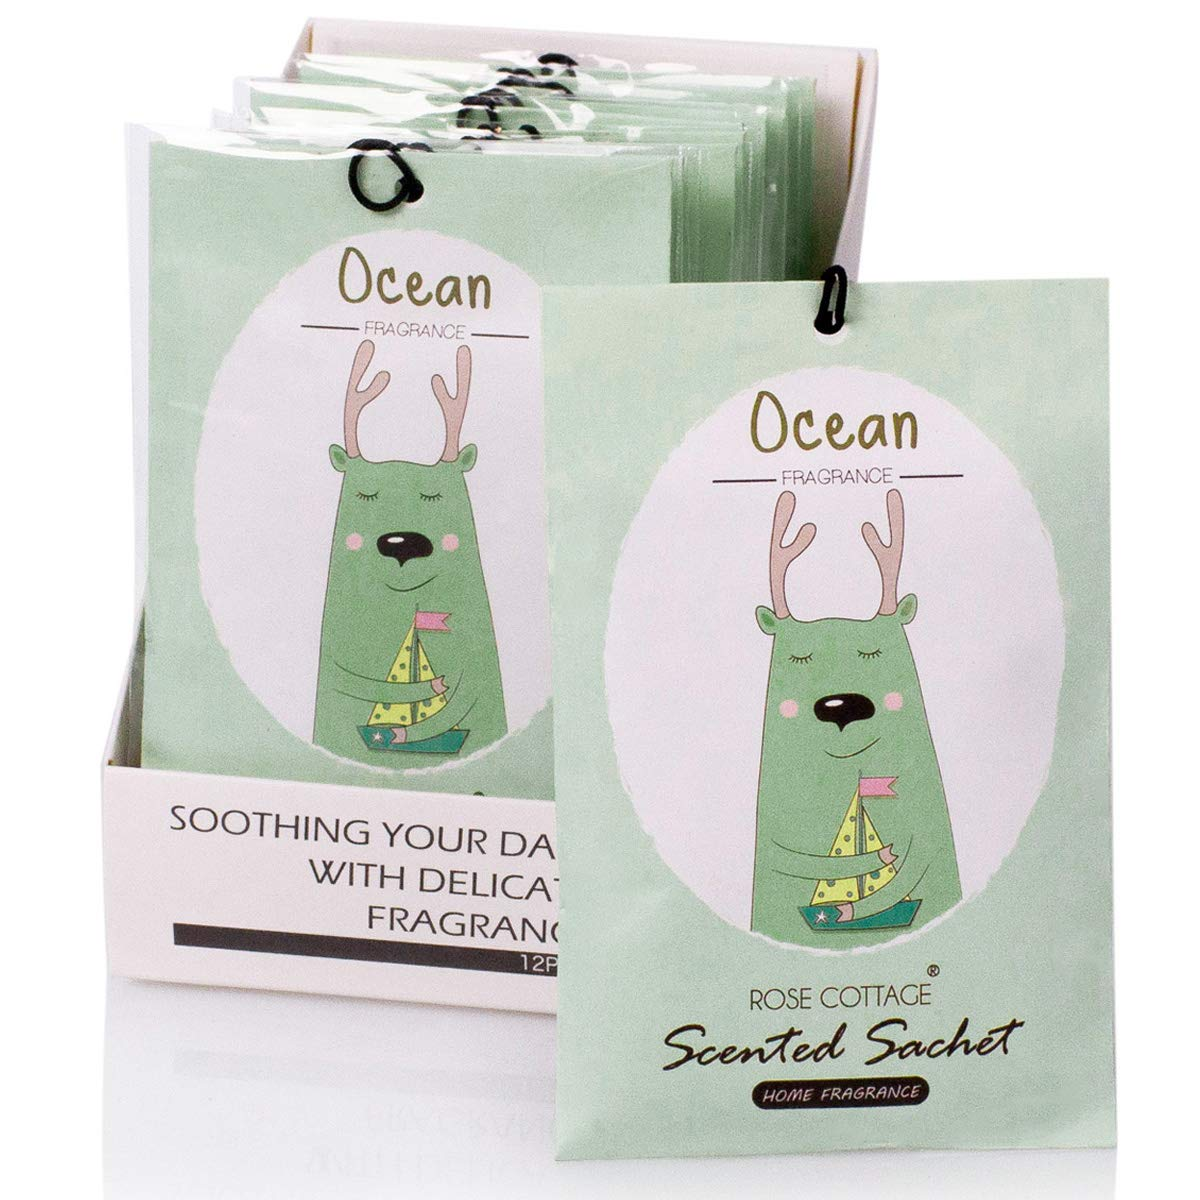 12Packs Ocean Closet Air Freshener Deodorizer Scented Sachets Bags for Drawer and Closet 16 Scents Optional-ROSE COTTAGE by Rose Cottage